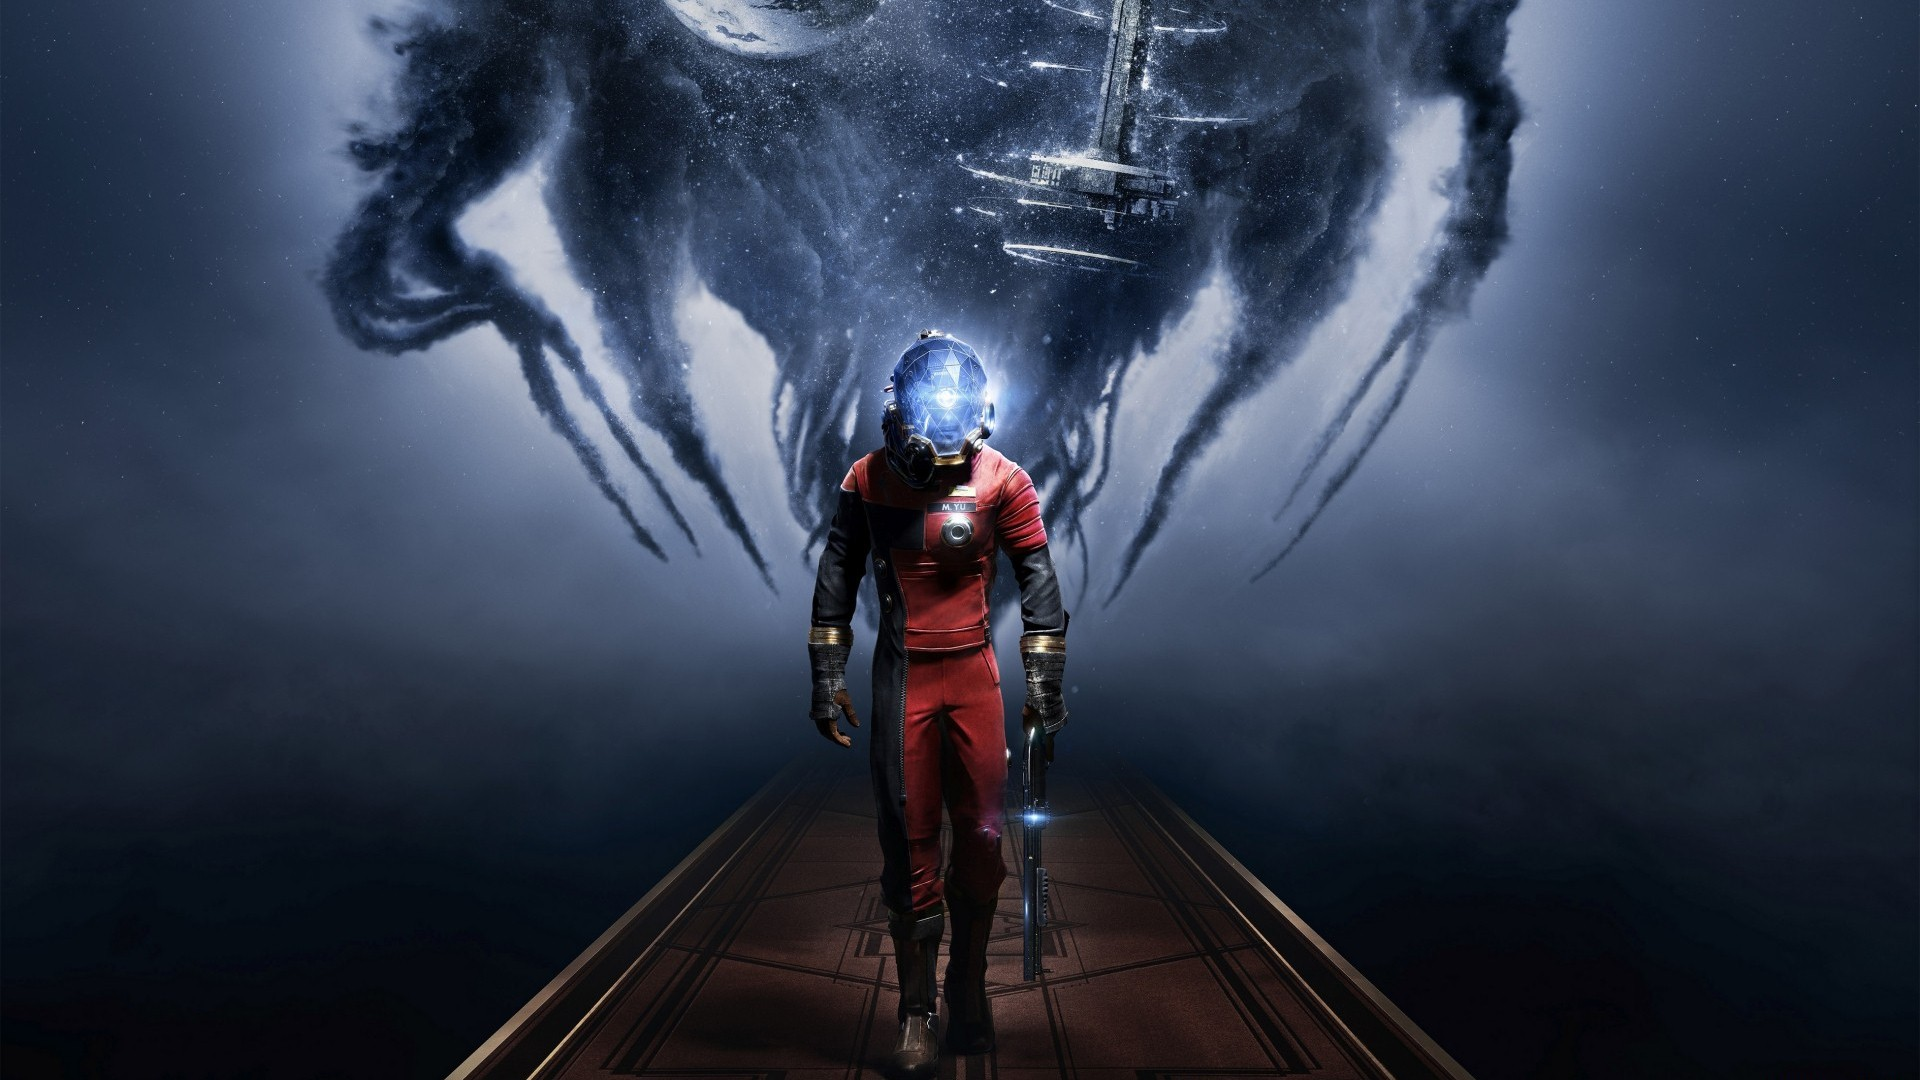 prey-2-game-2016-wallpaper-01931